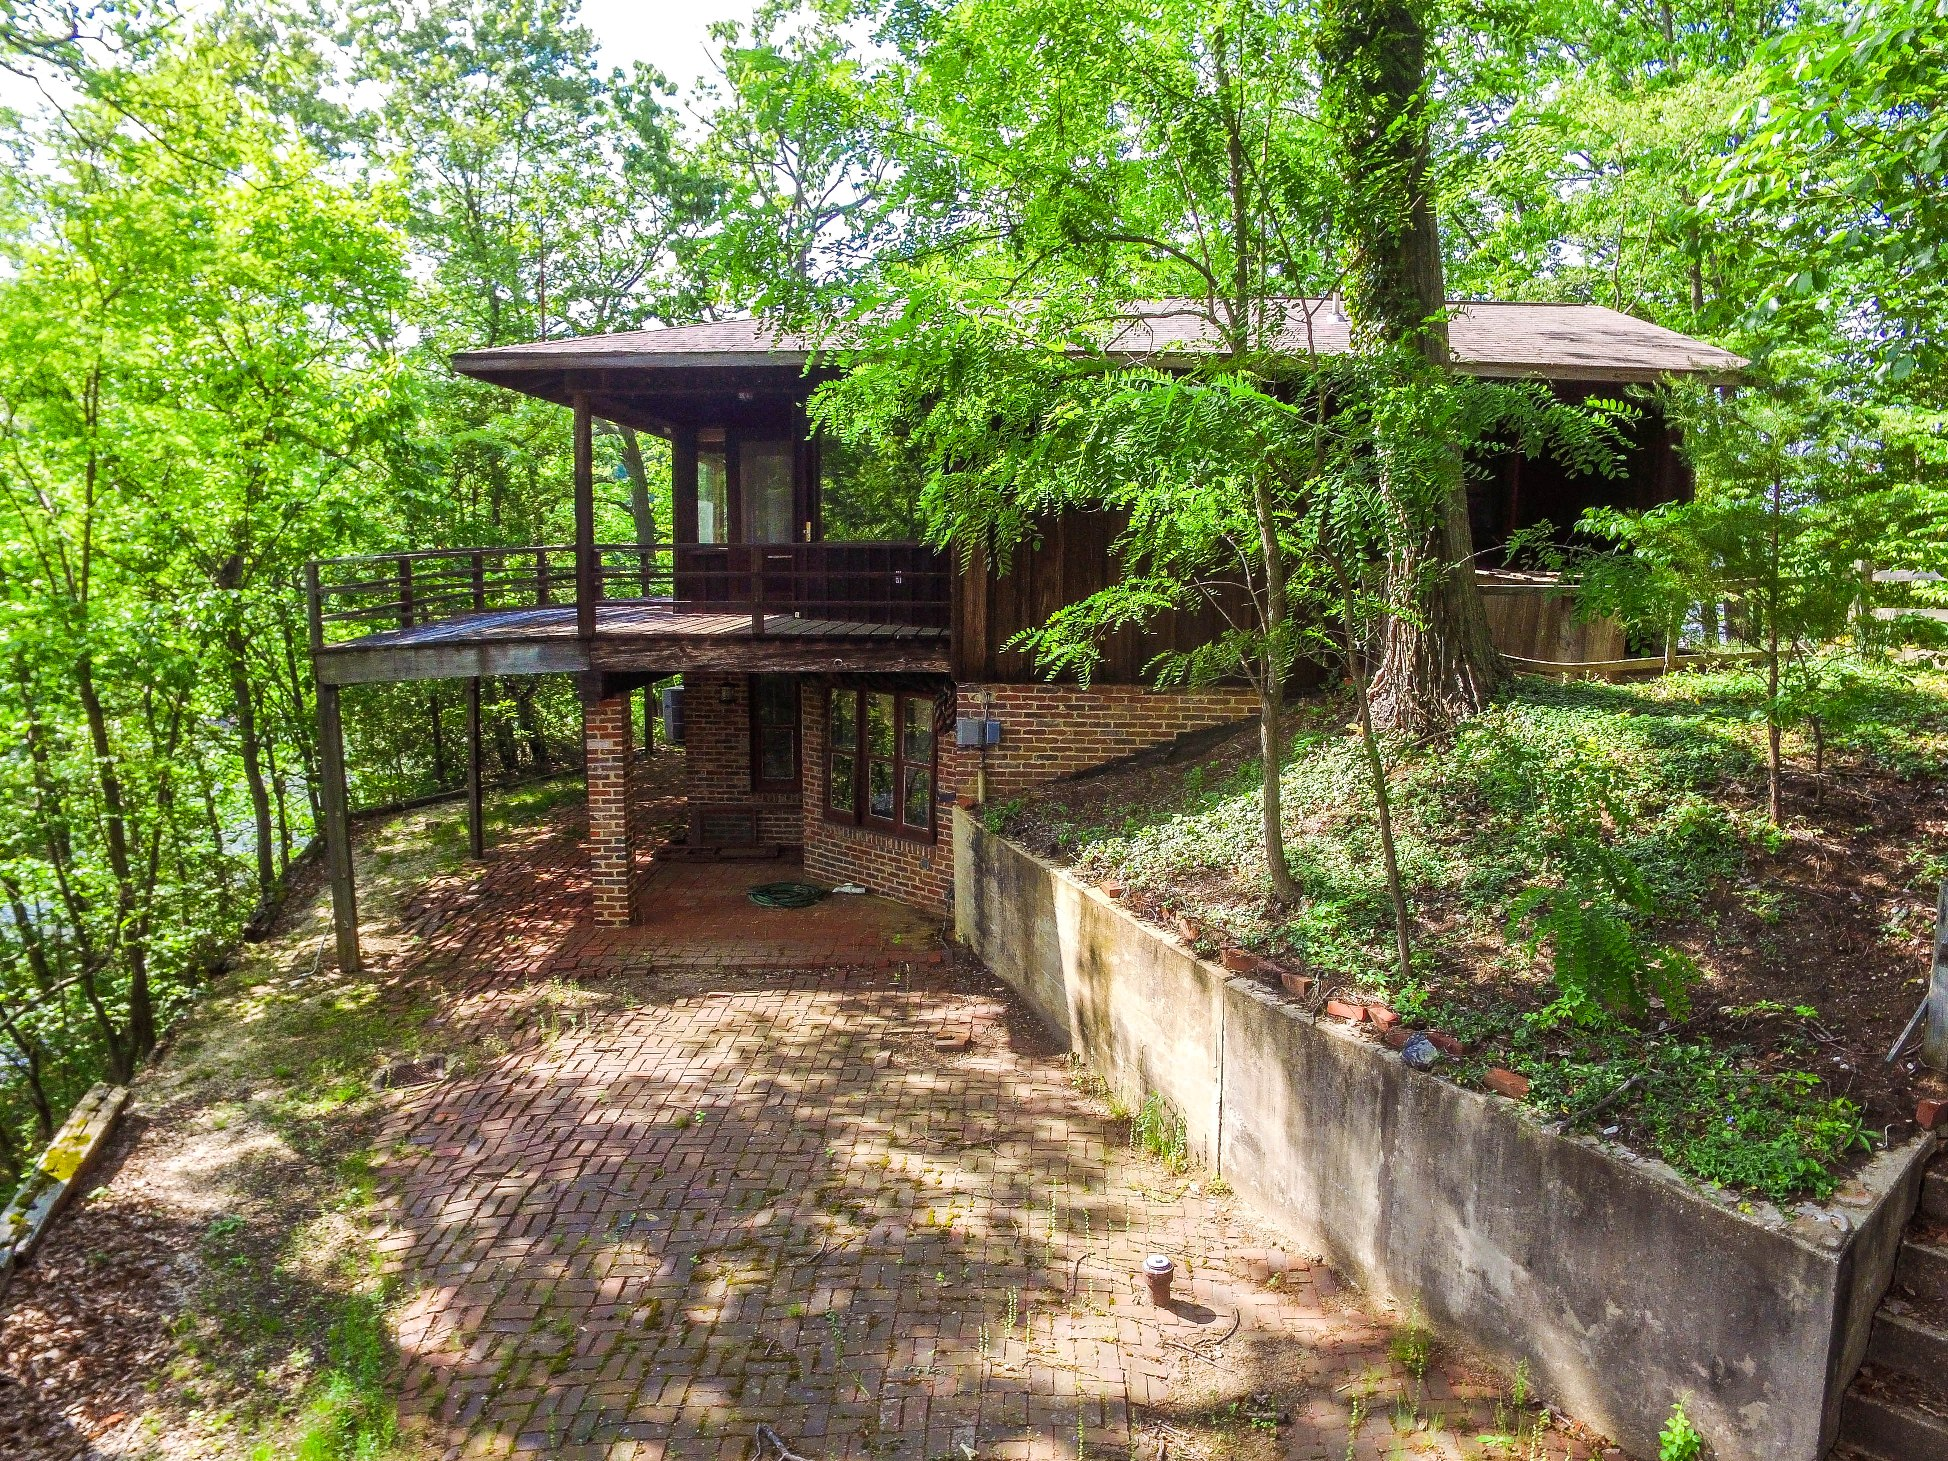 Additional photo for property listing at 850 Childs Point Road, Annapolis 850 Childs Point Rd Annapolis, Maryland 21401 United States